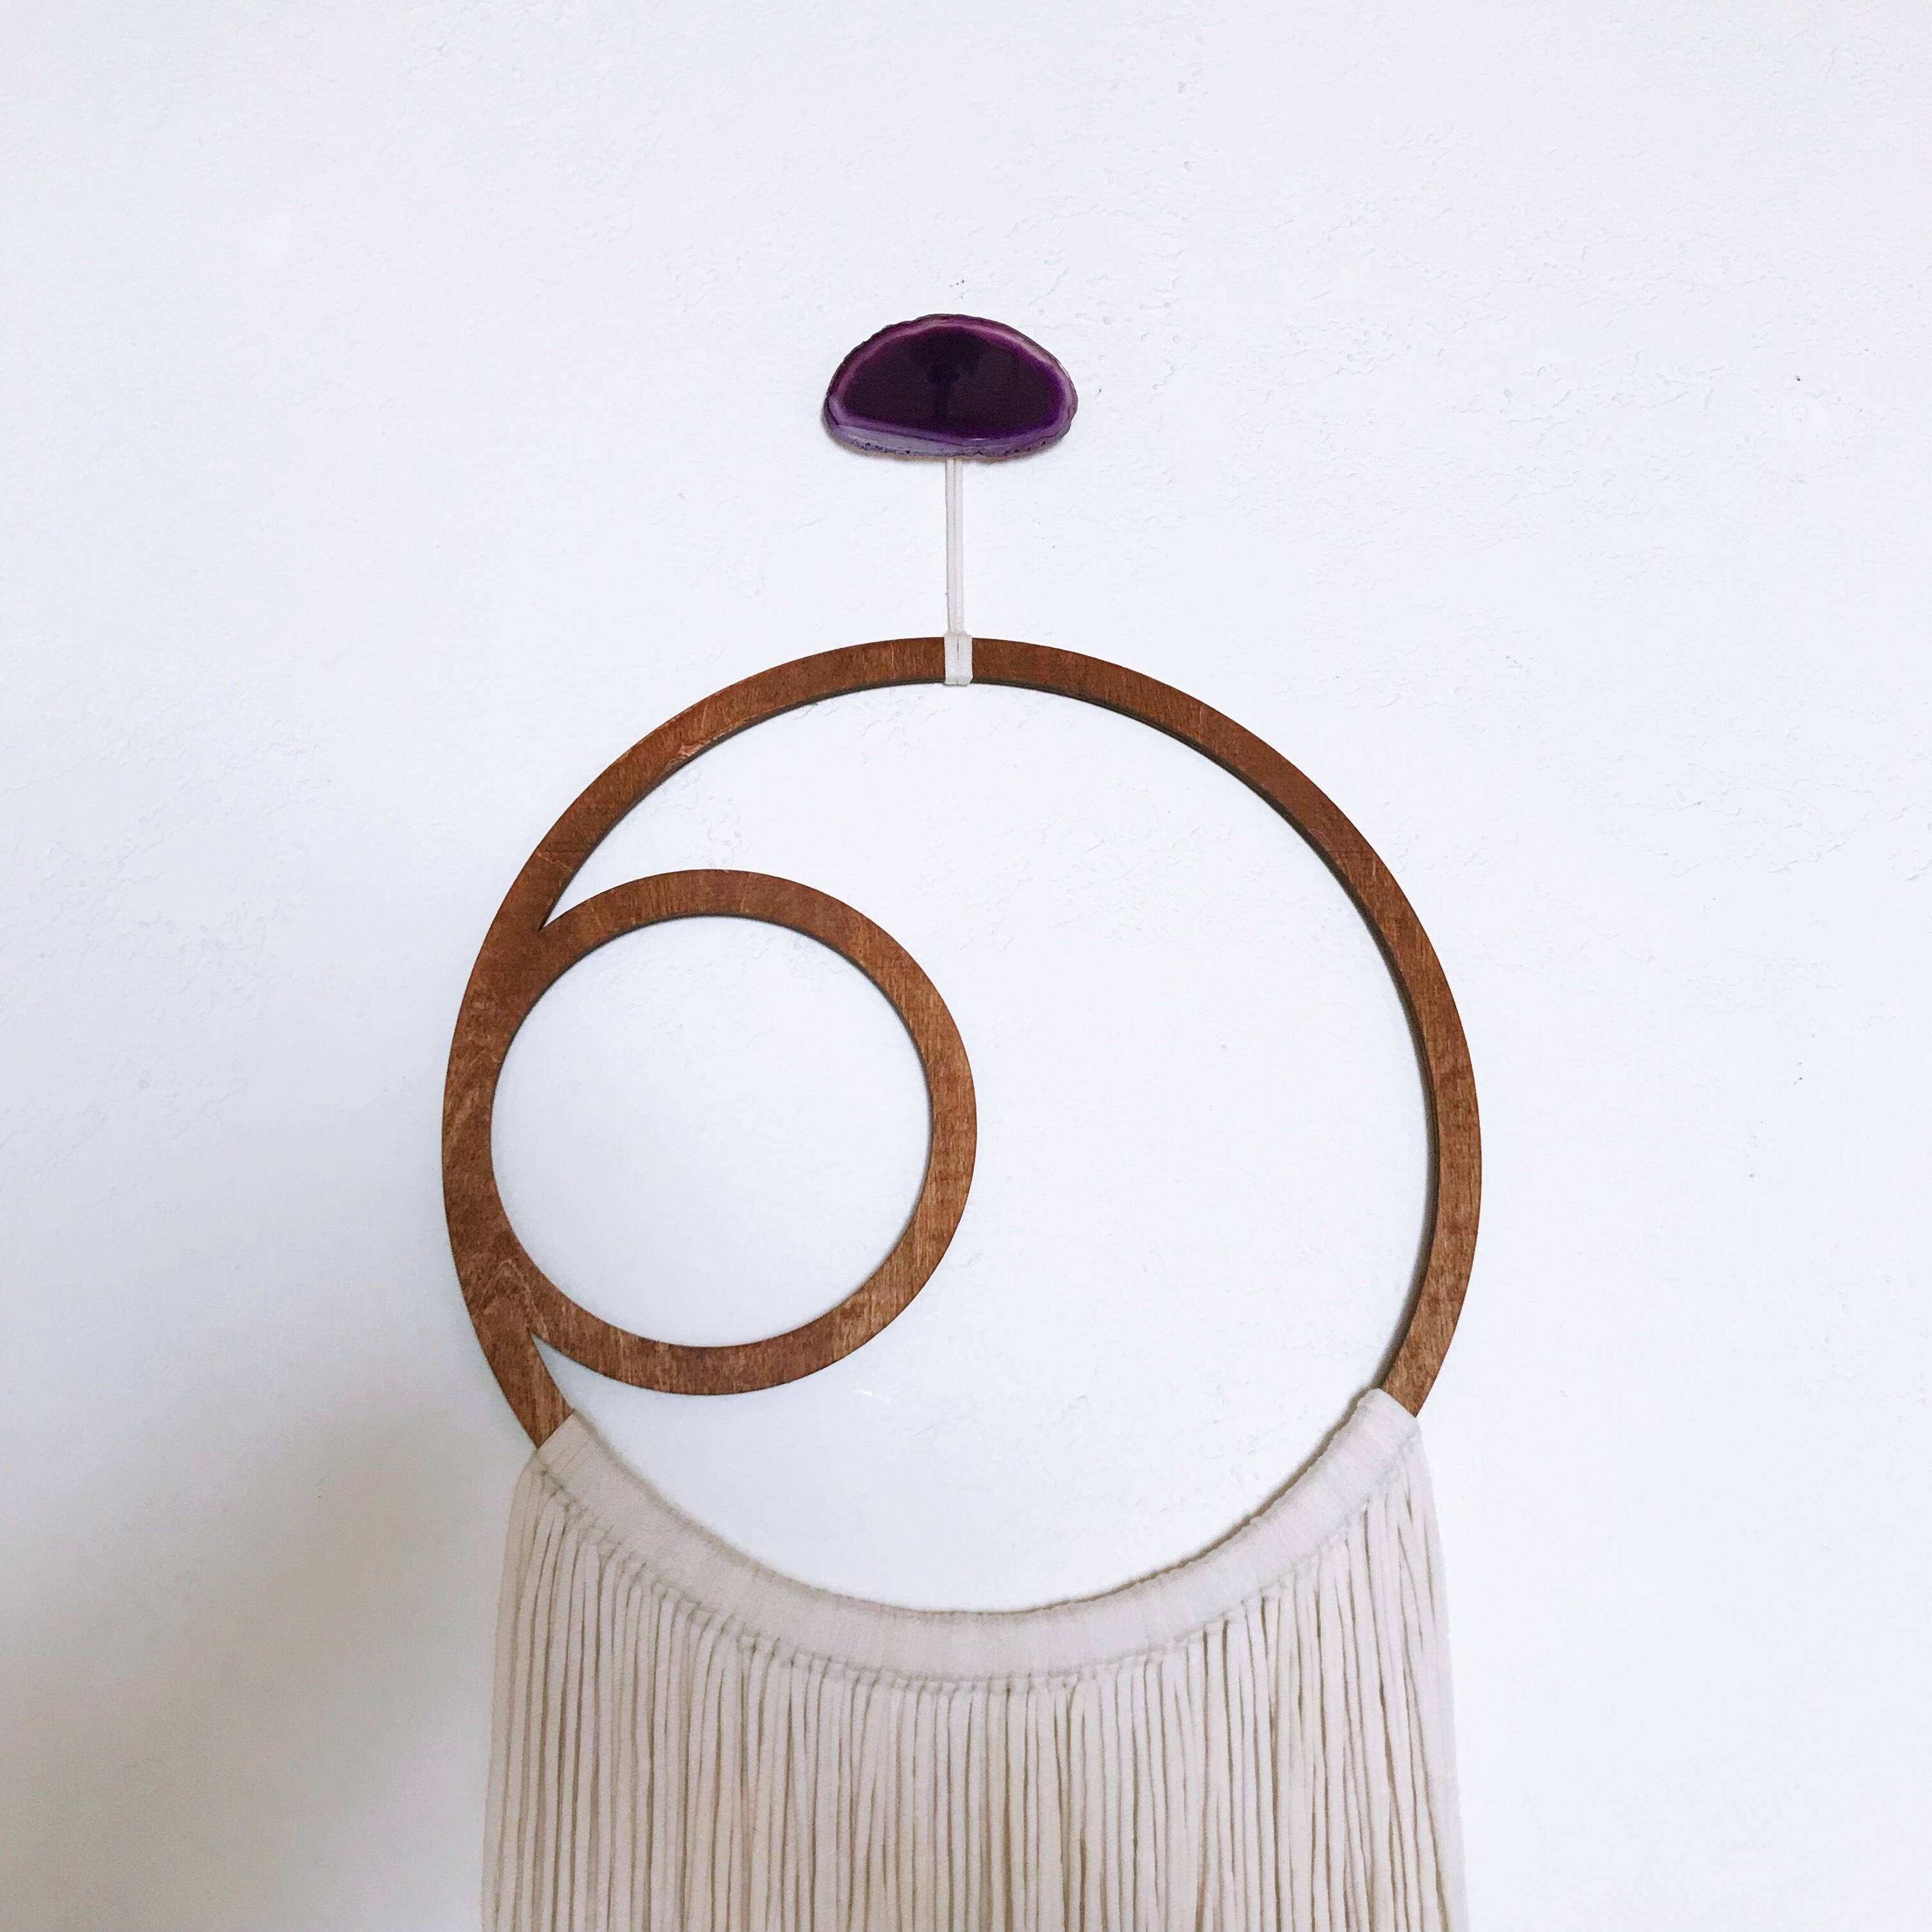 Decorative Wall Hangers Home Design Wire For Plates Coat